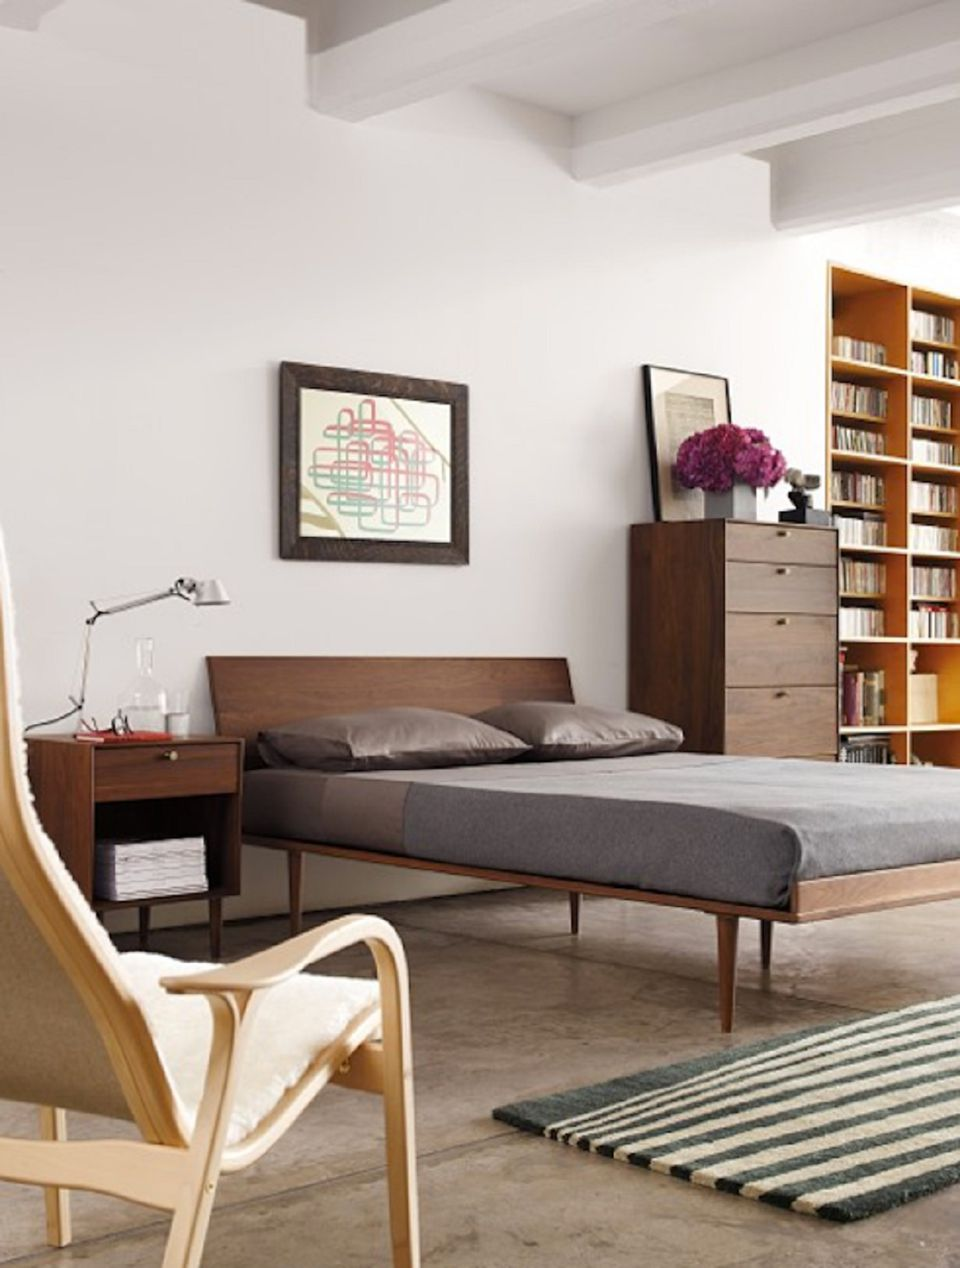 plans at with free inspiring modern design bedrooms century mid new picture of bedroom